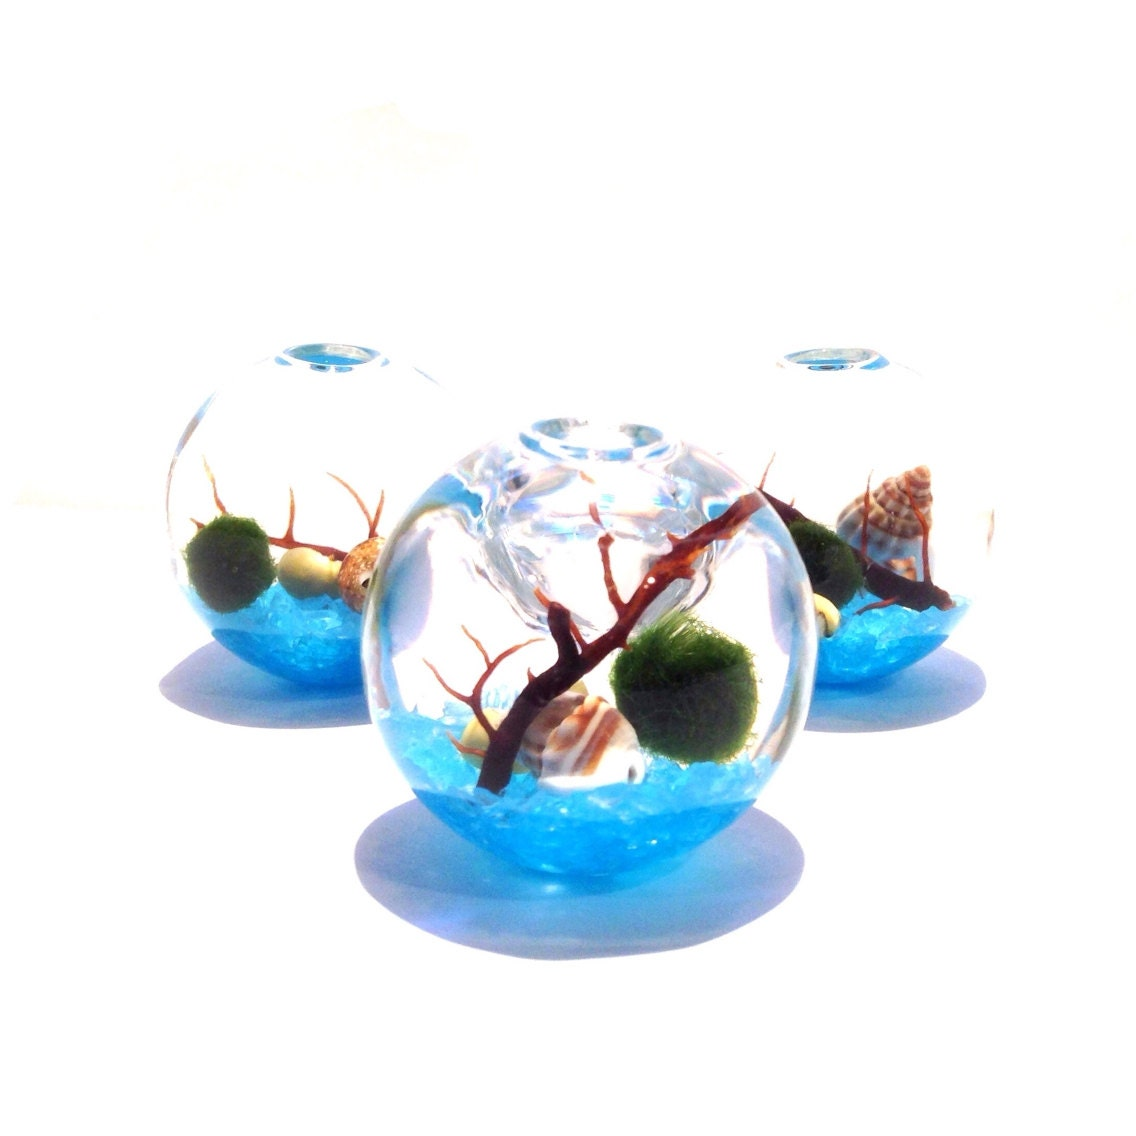 Marimo Terrarium Cul-De-Sac of the Blue Ice Sea  - LivingZenArt